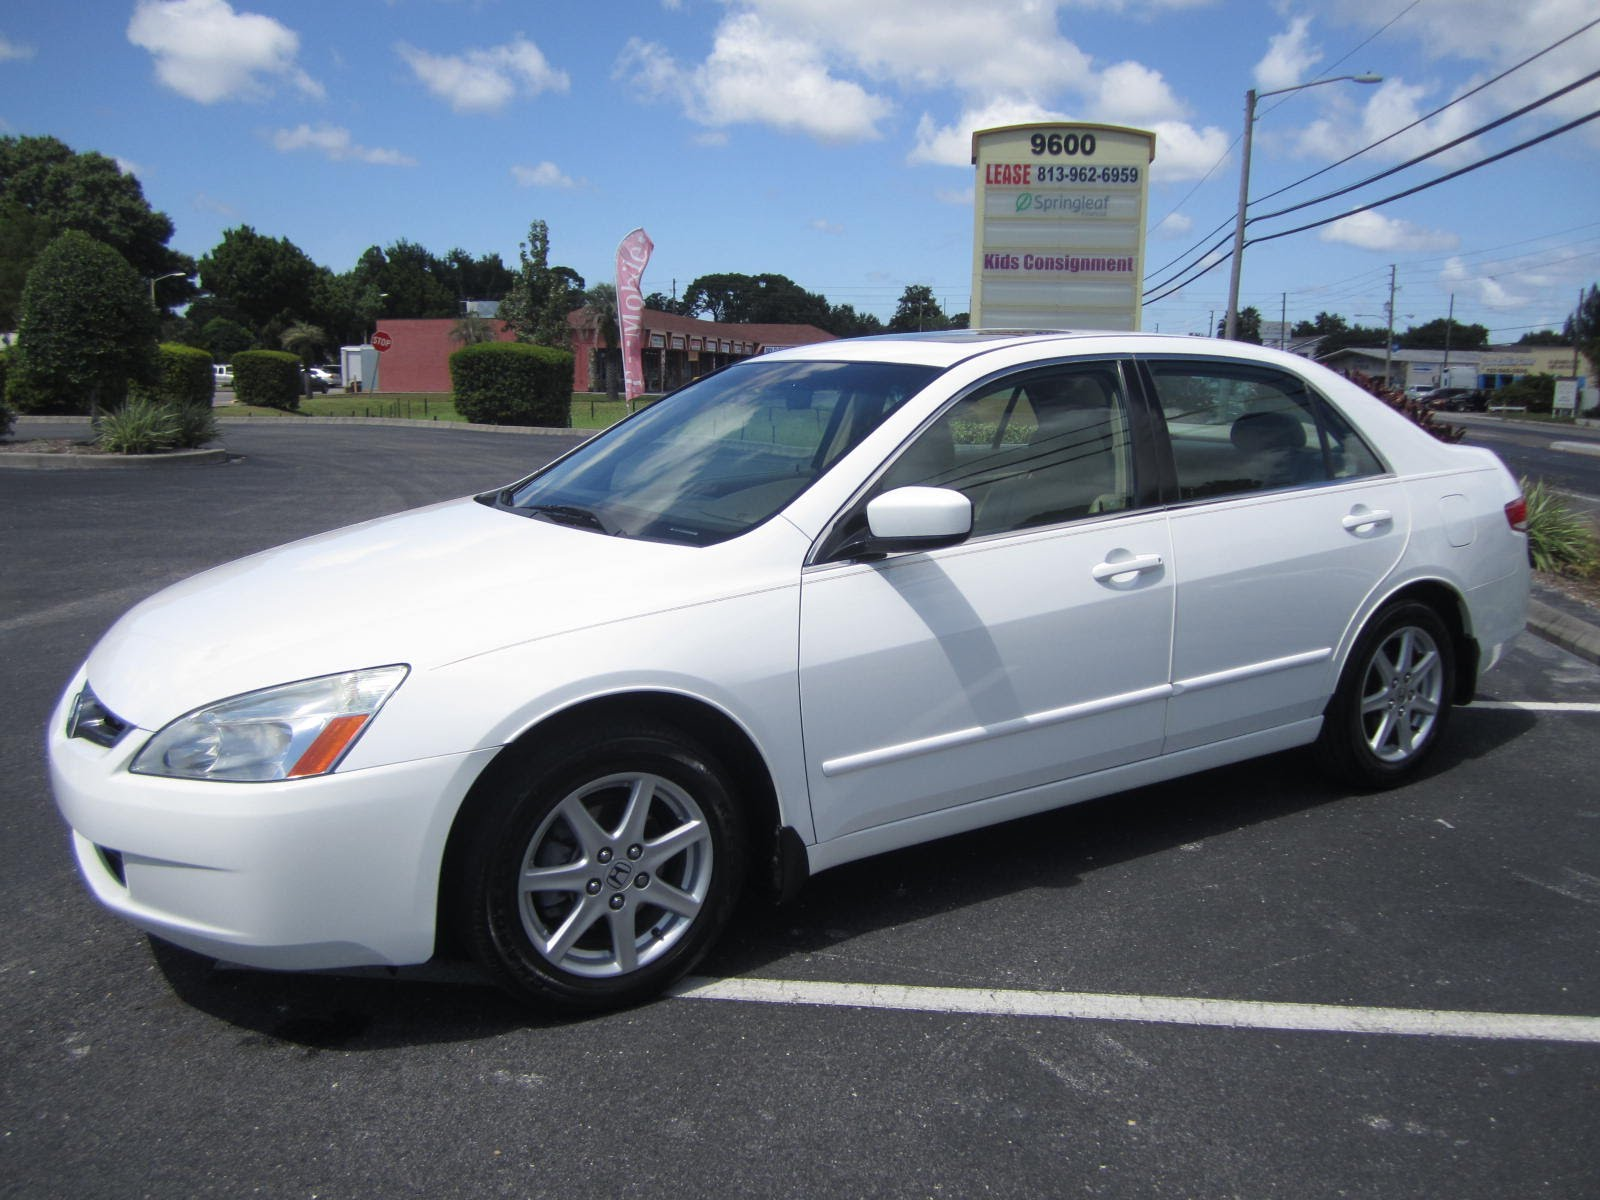 informations com articles honda for sale photos accord makes accords bestcarmag